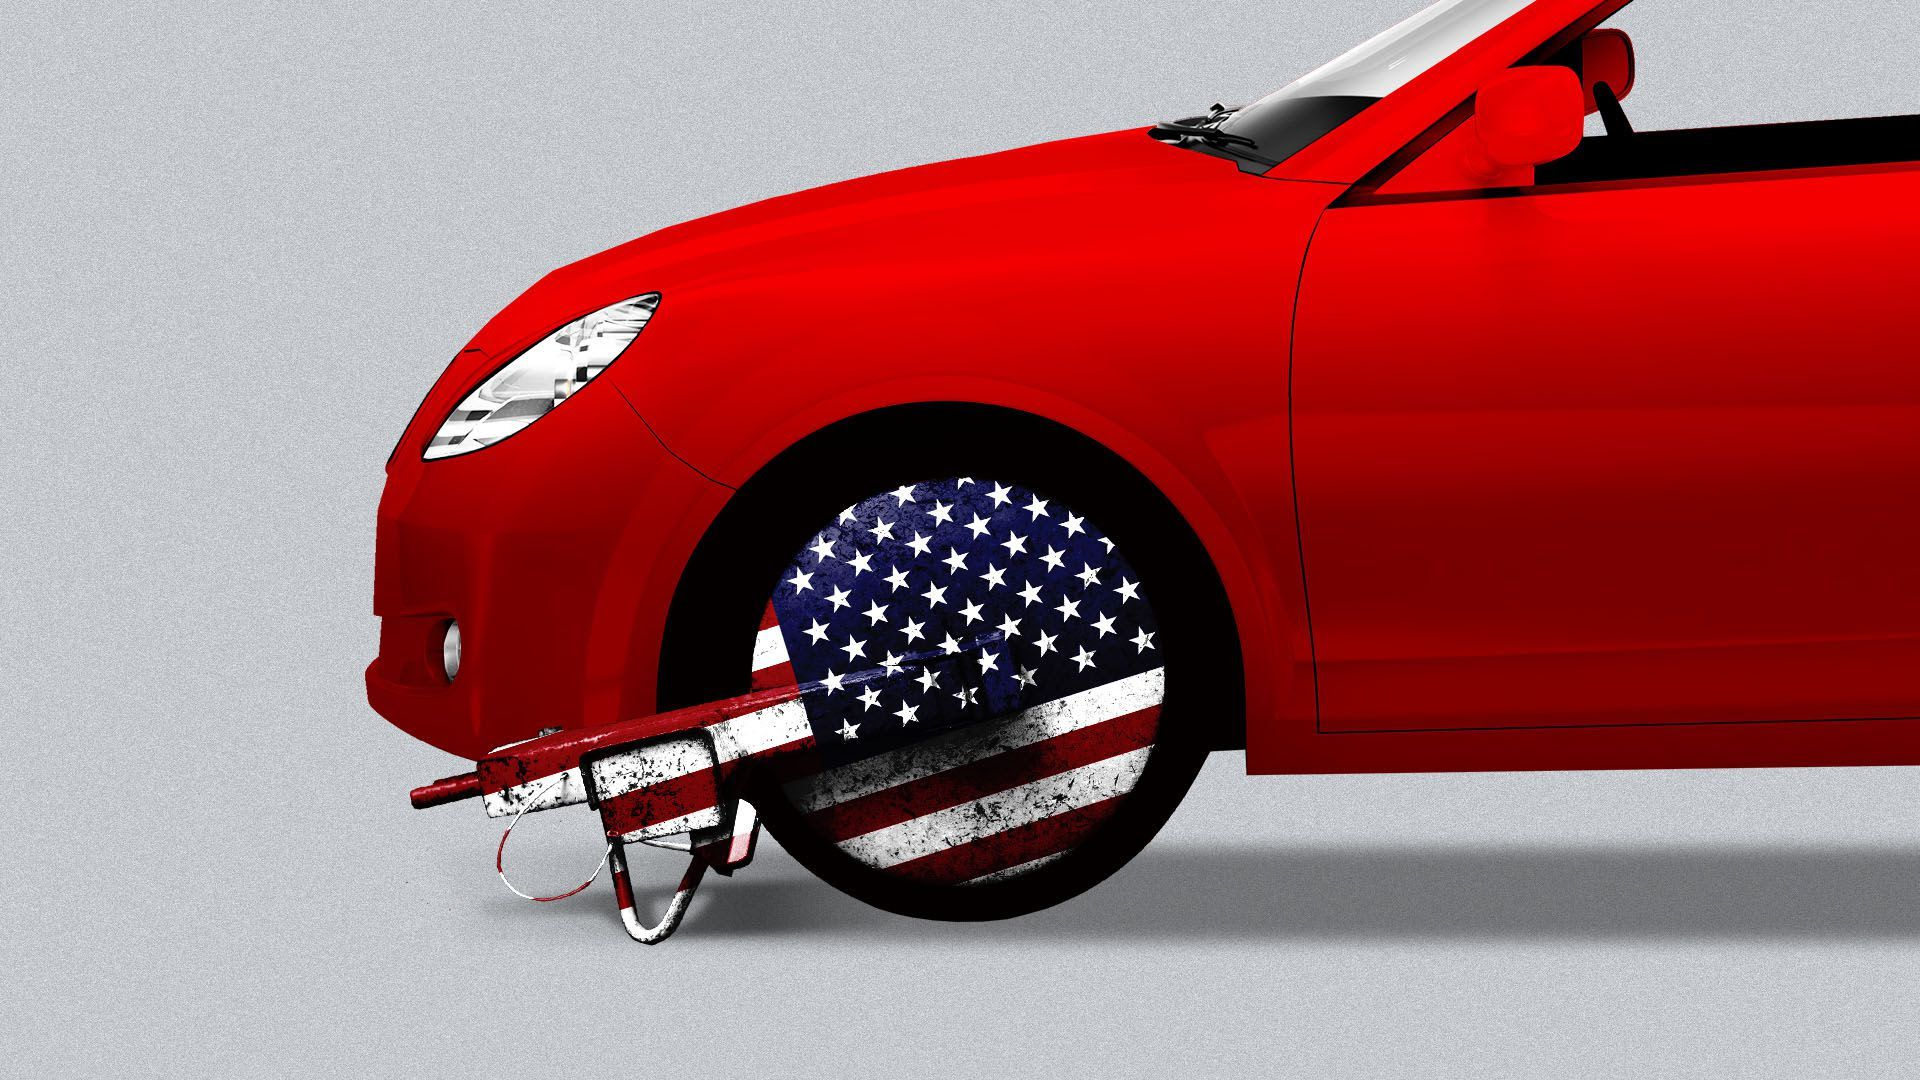 Photo of a car with a boot on the tire that's got the American flag printed on it